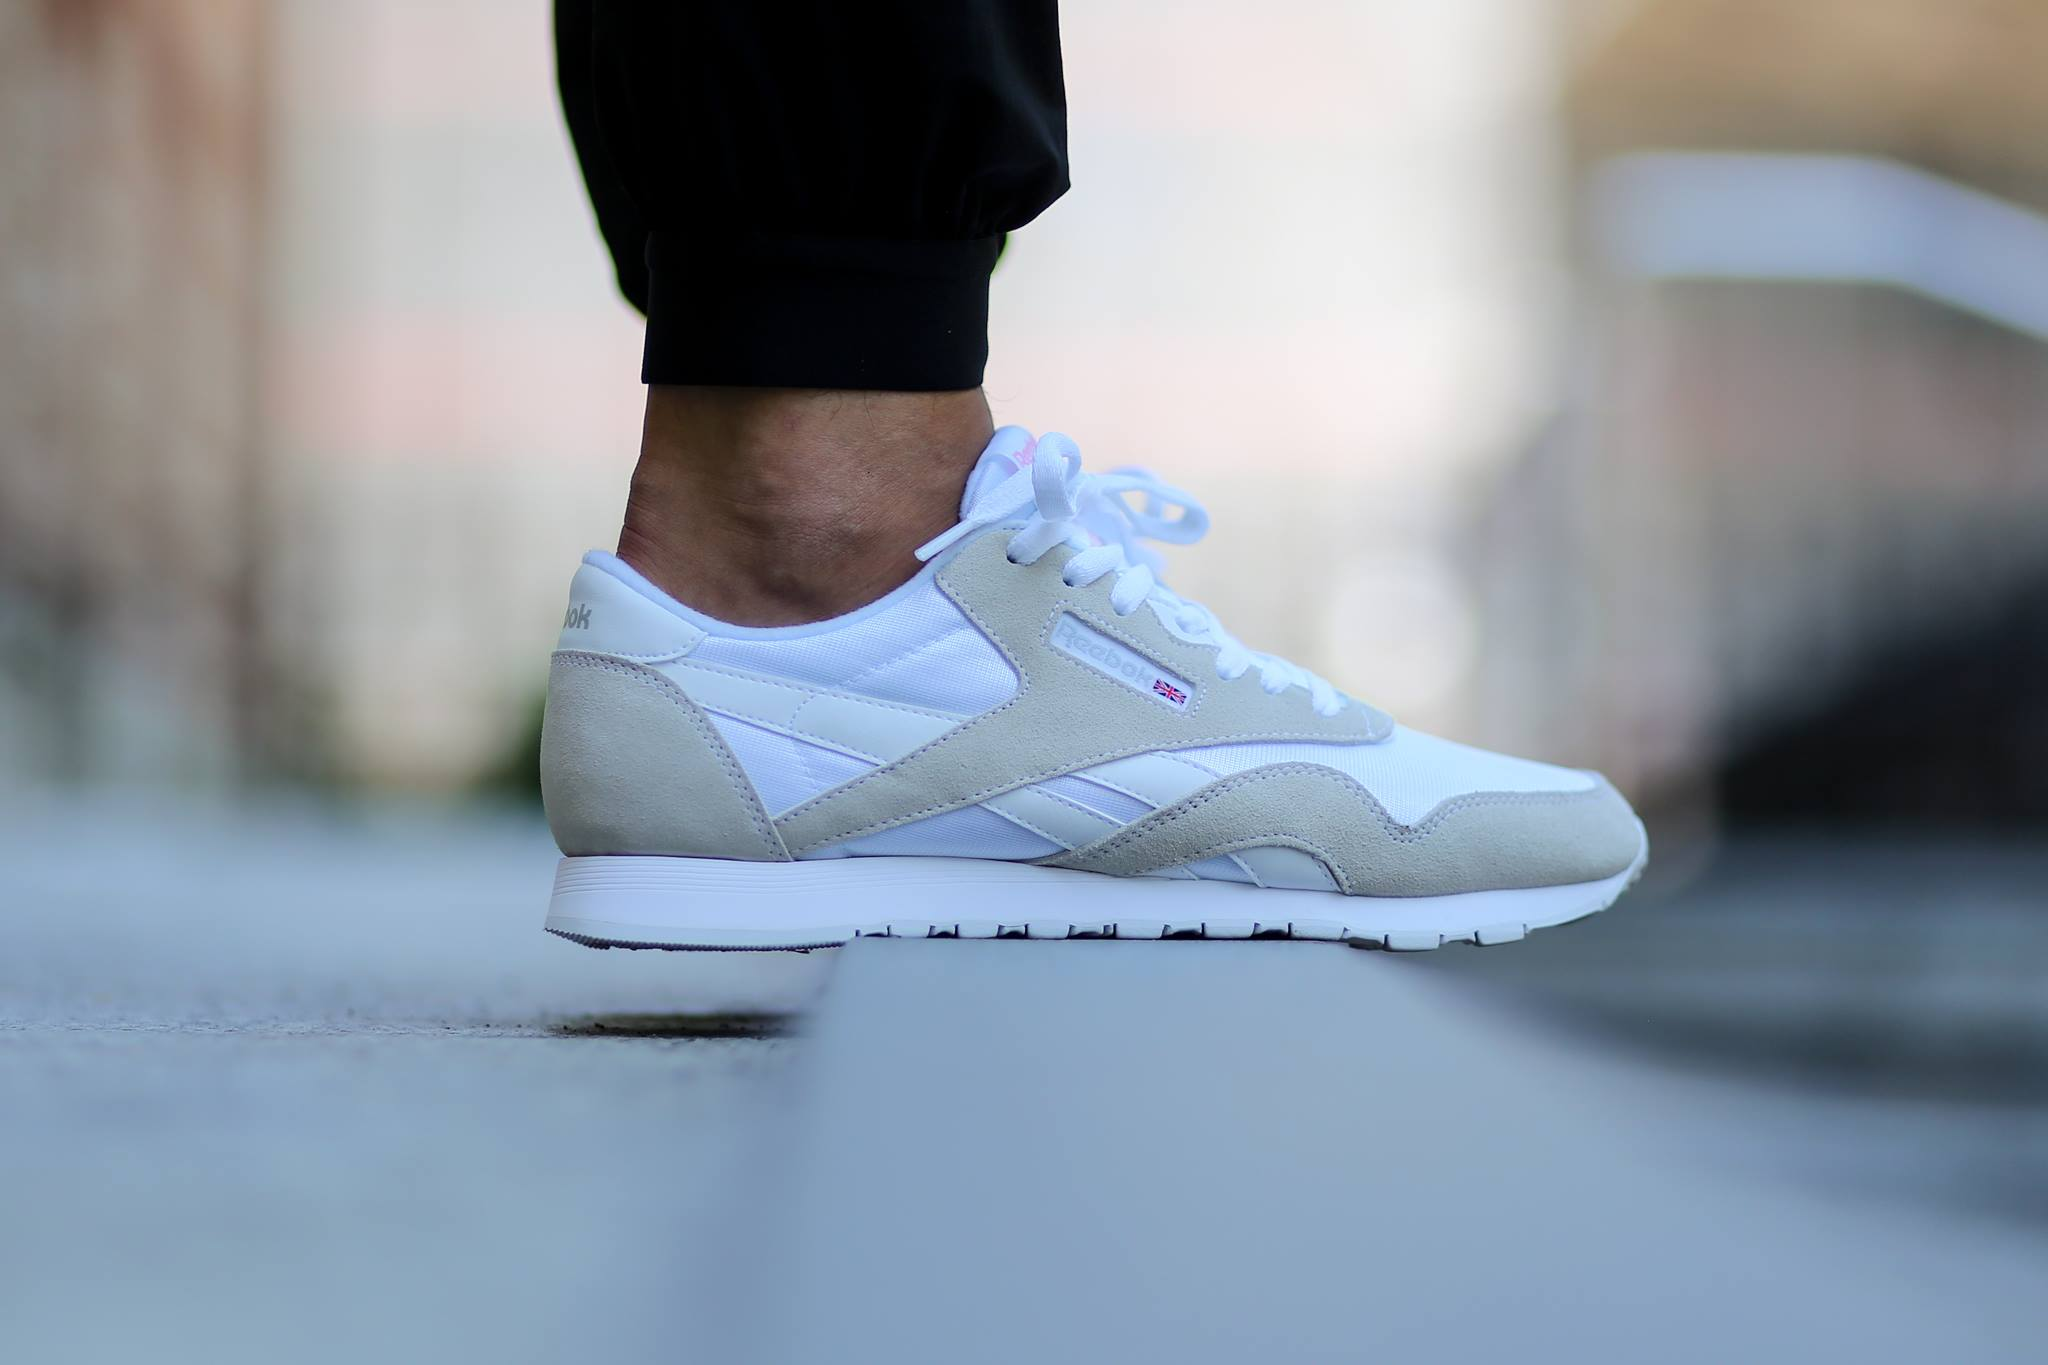 A Really Clean Pair of Reebok Classic